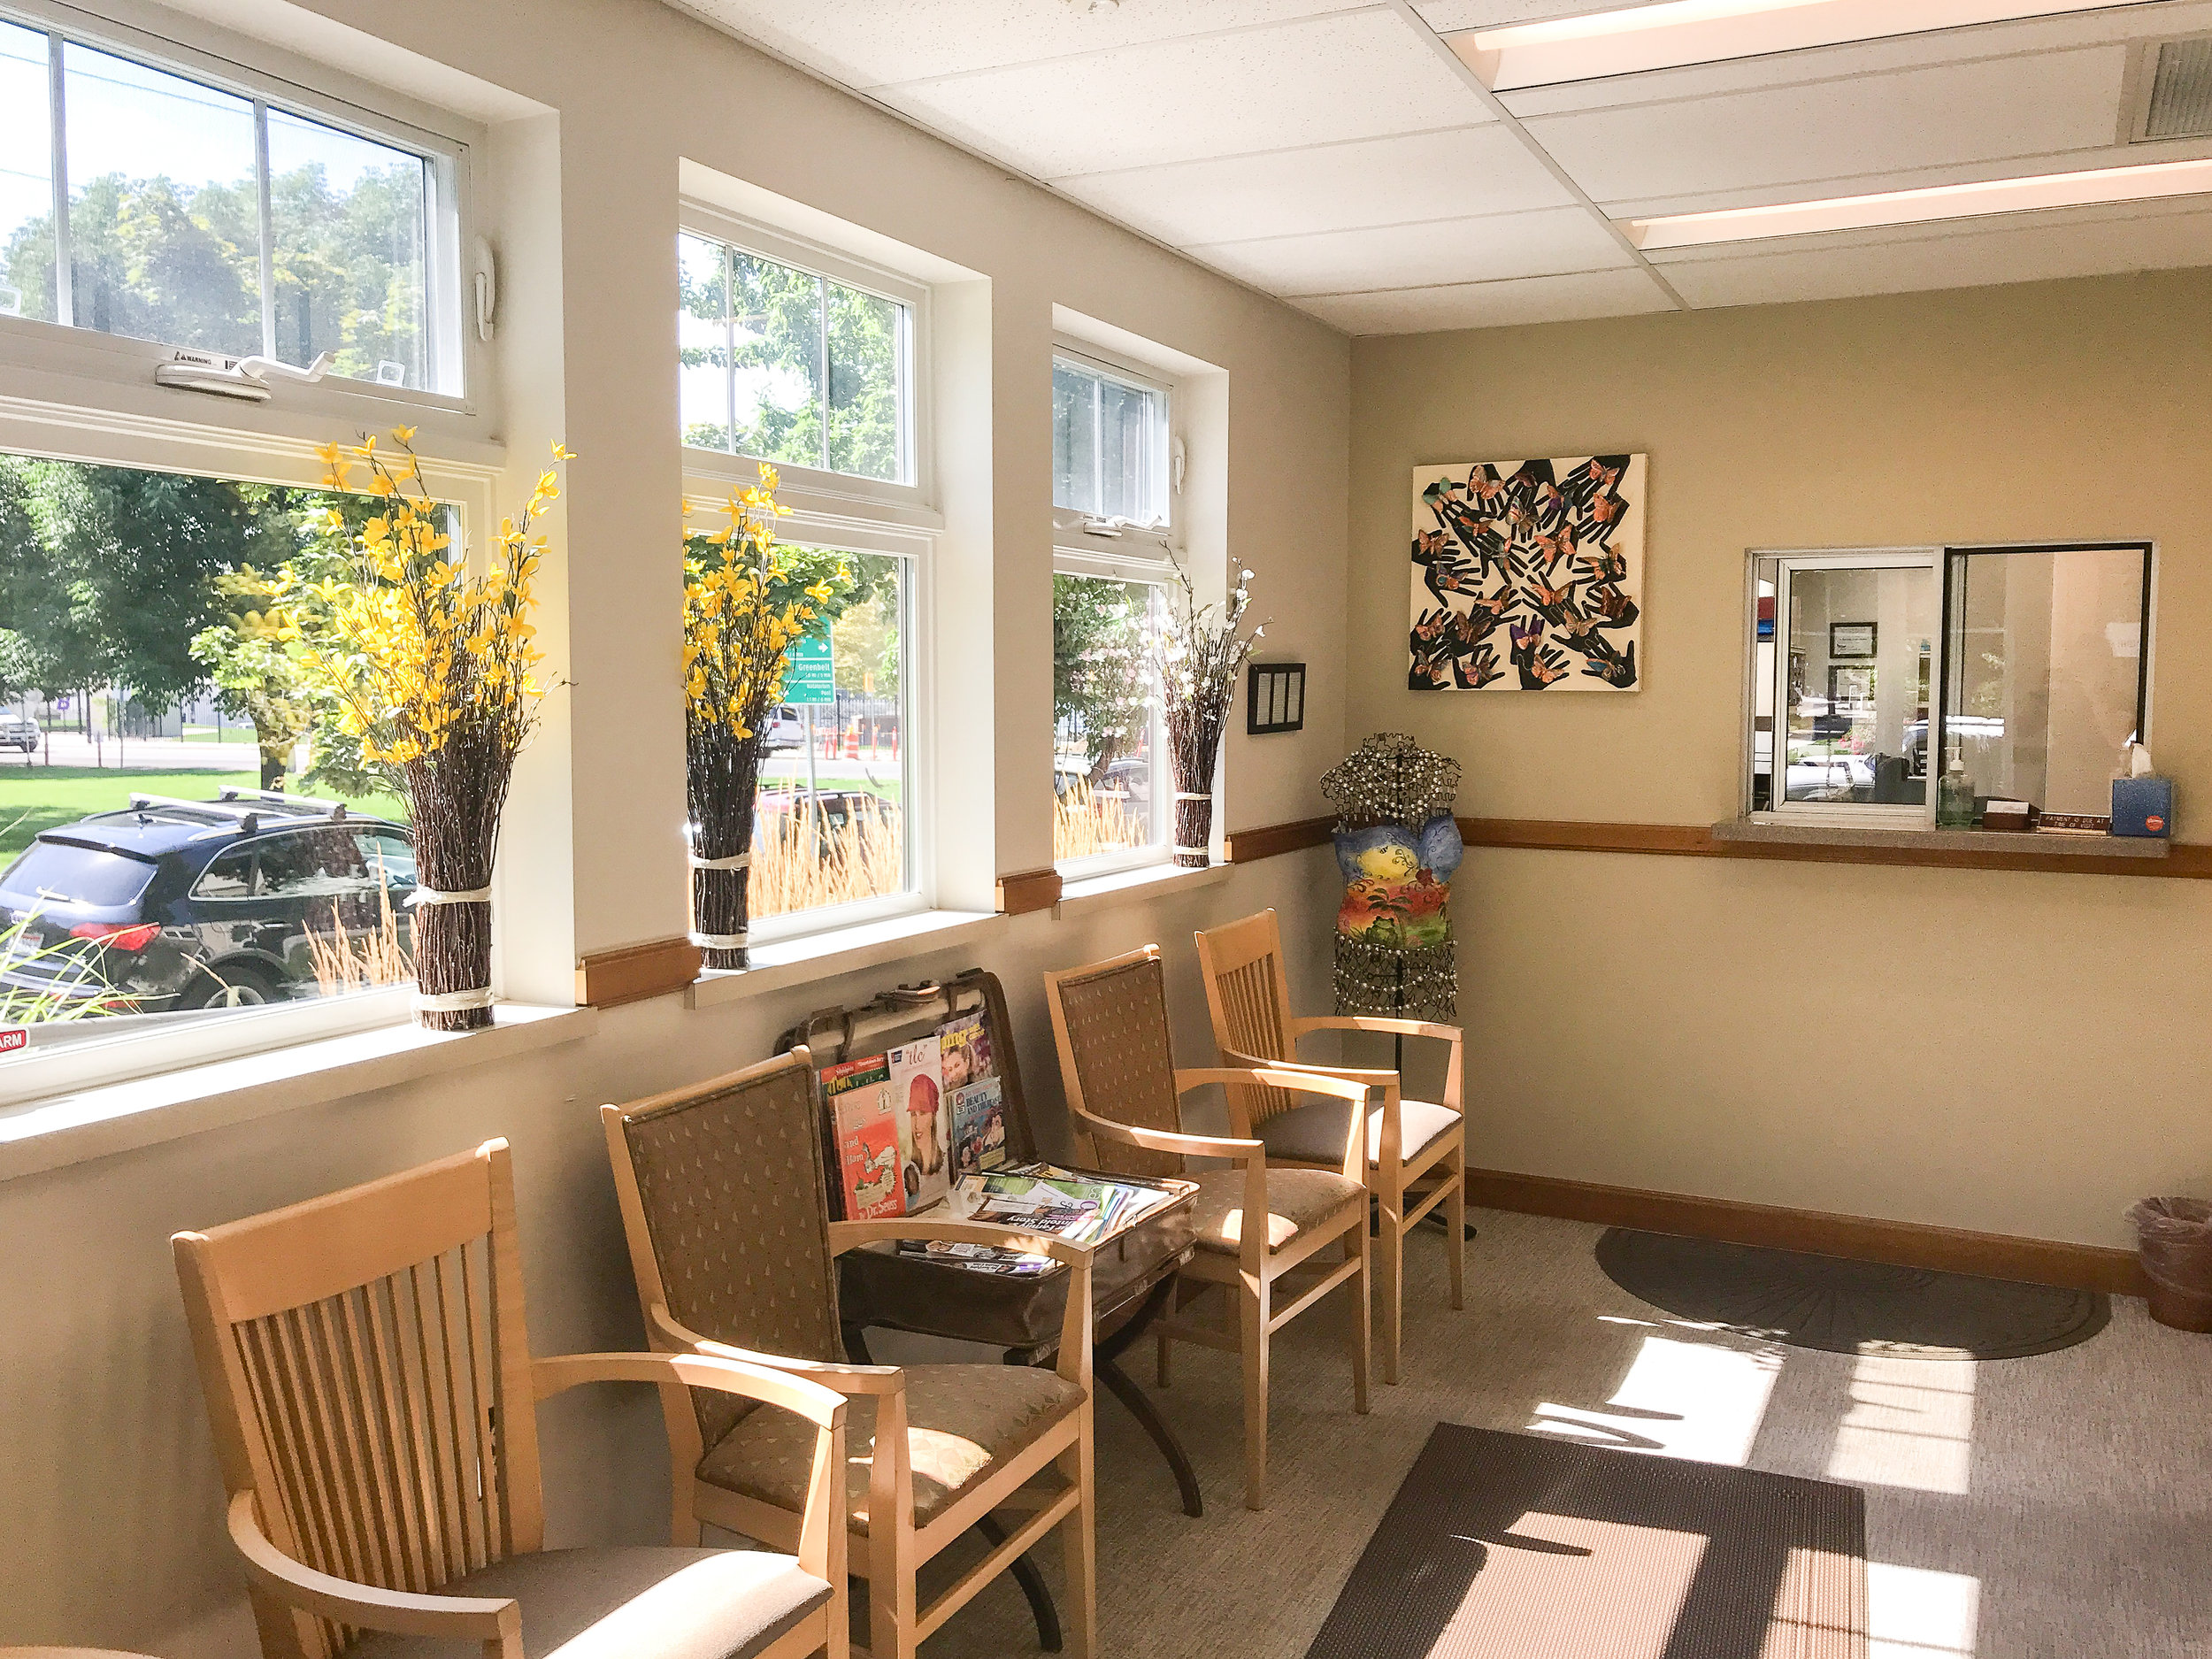 Interested in an appointment? - Please click below to see new patient opportunities - be sure to read through all the material before calling to schedule your appointment!